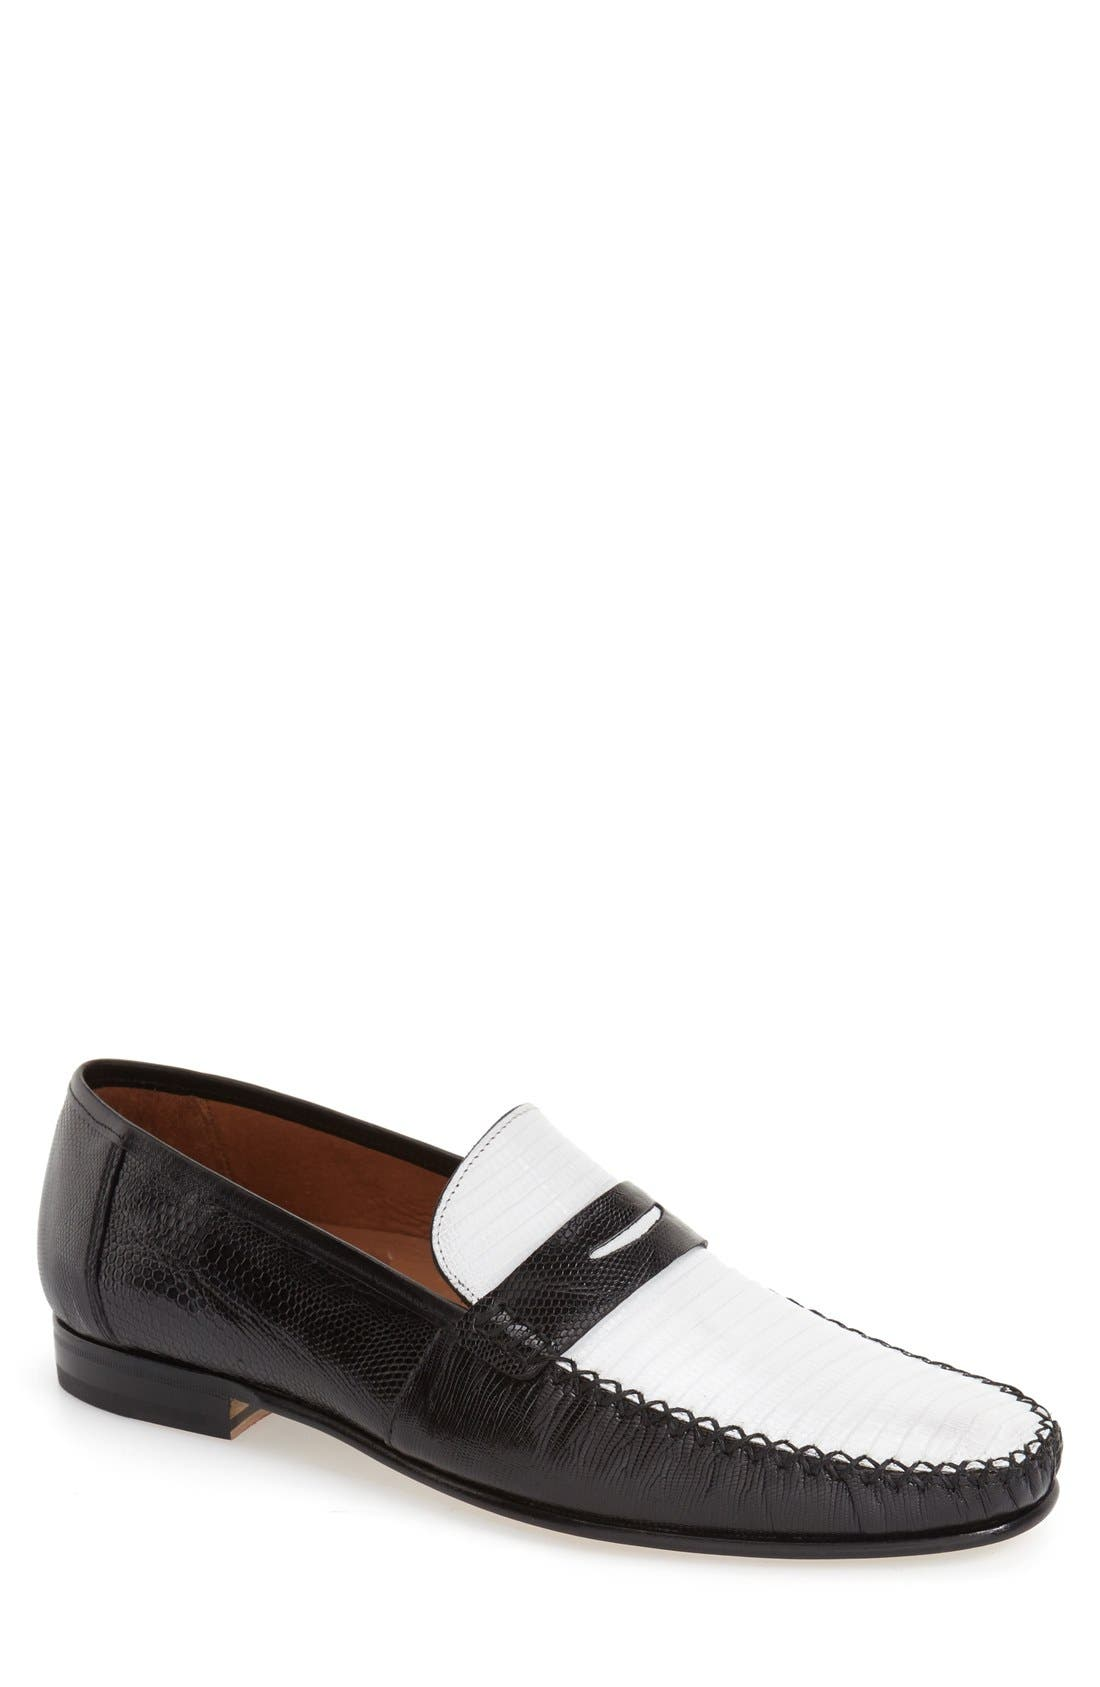 'Cubas' Penny Loafer,                         Main,                         color, 010